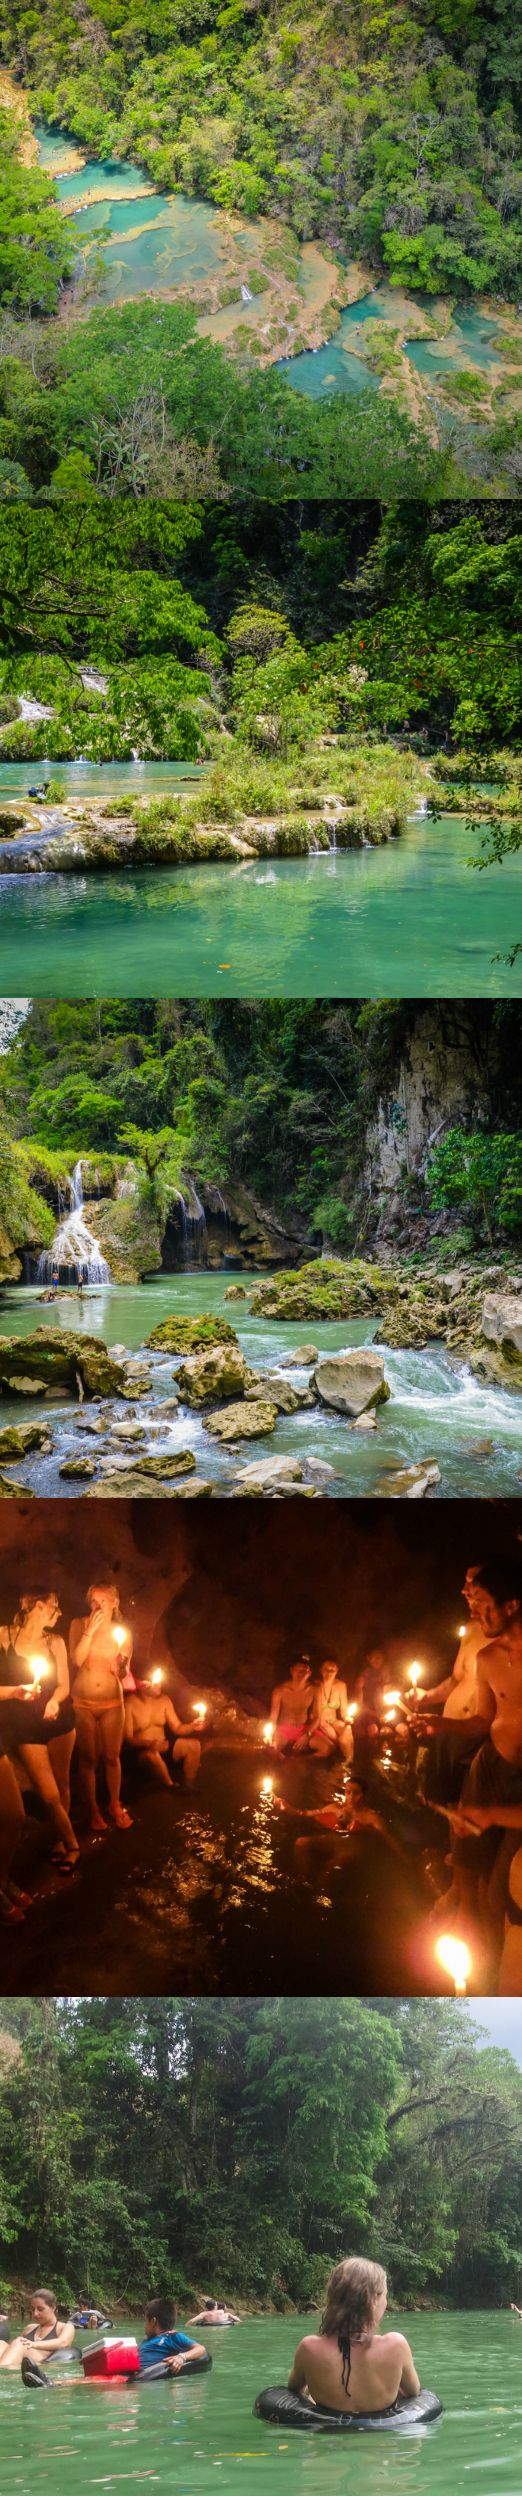 My Favorite Day in Central America — Semuc Champey / via Adventurous Kate. » Oh, I want to go here... looks like an awesome day!!